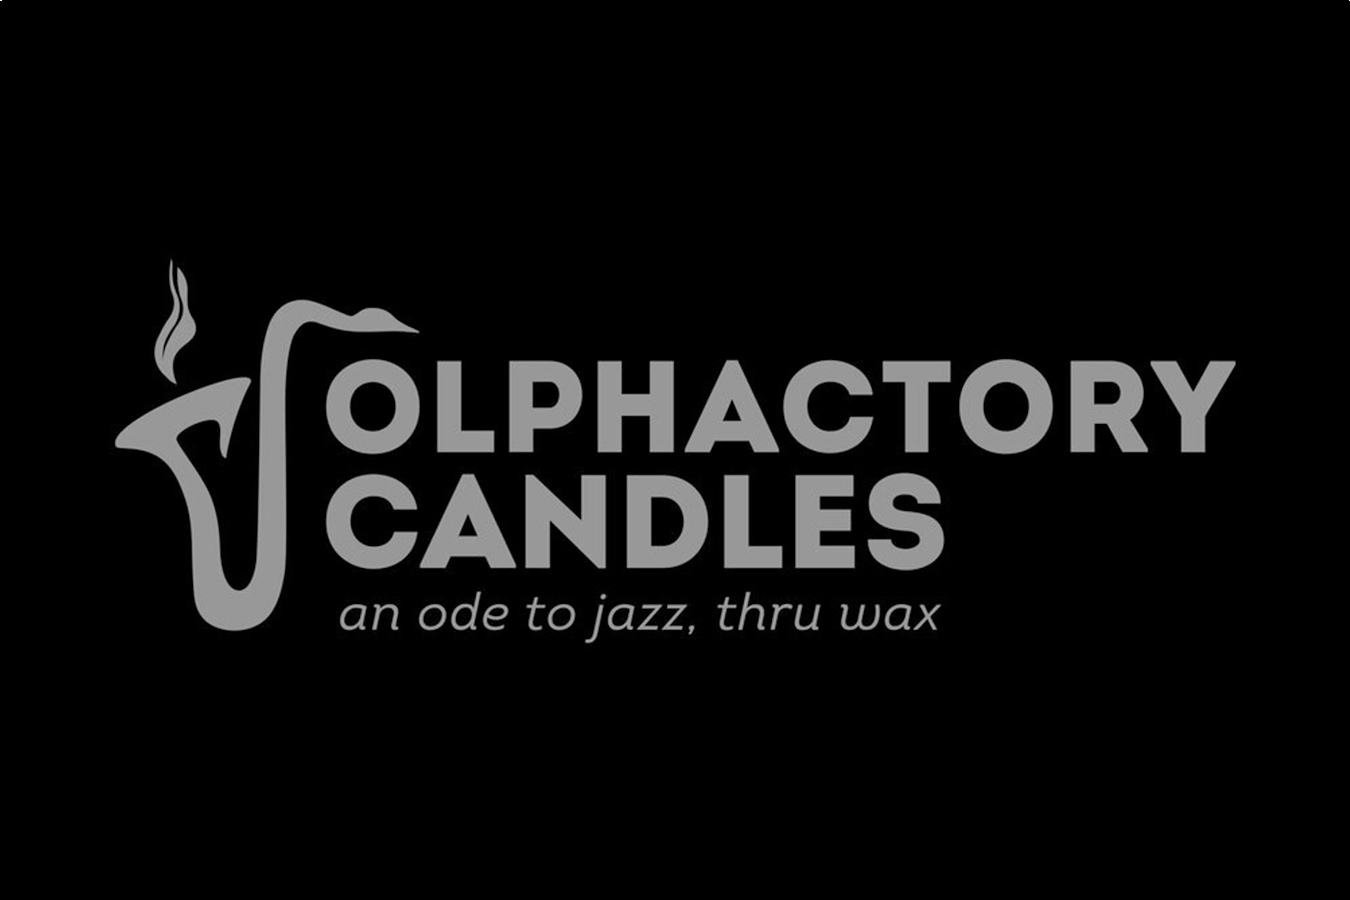 The OLPHACTORY CANDLES logo in silver on a black background.